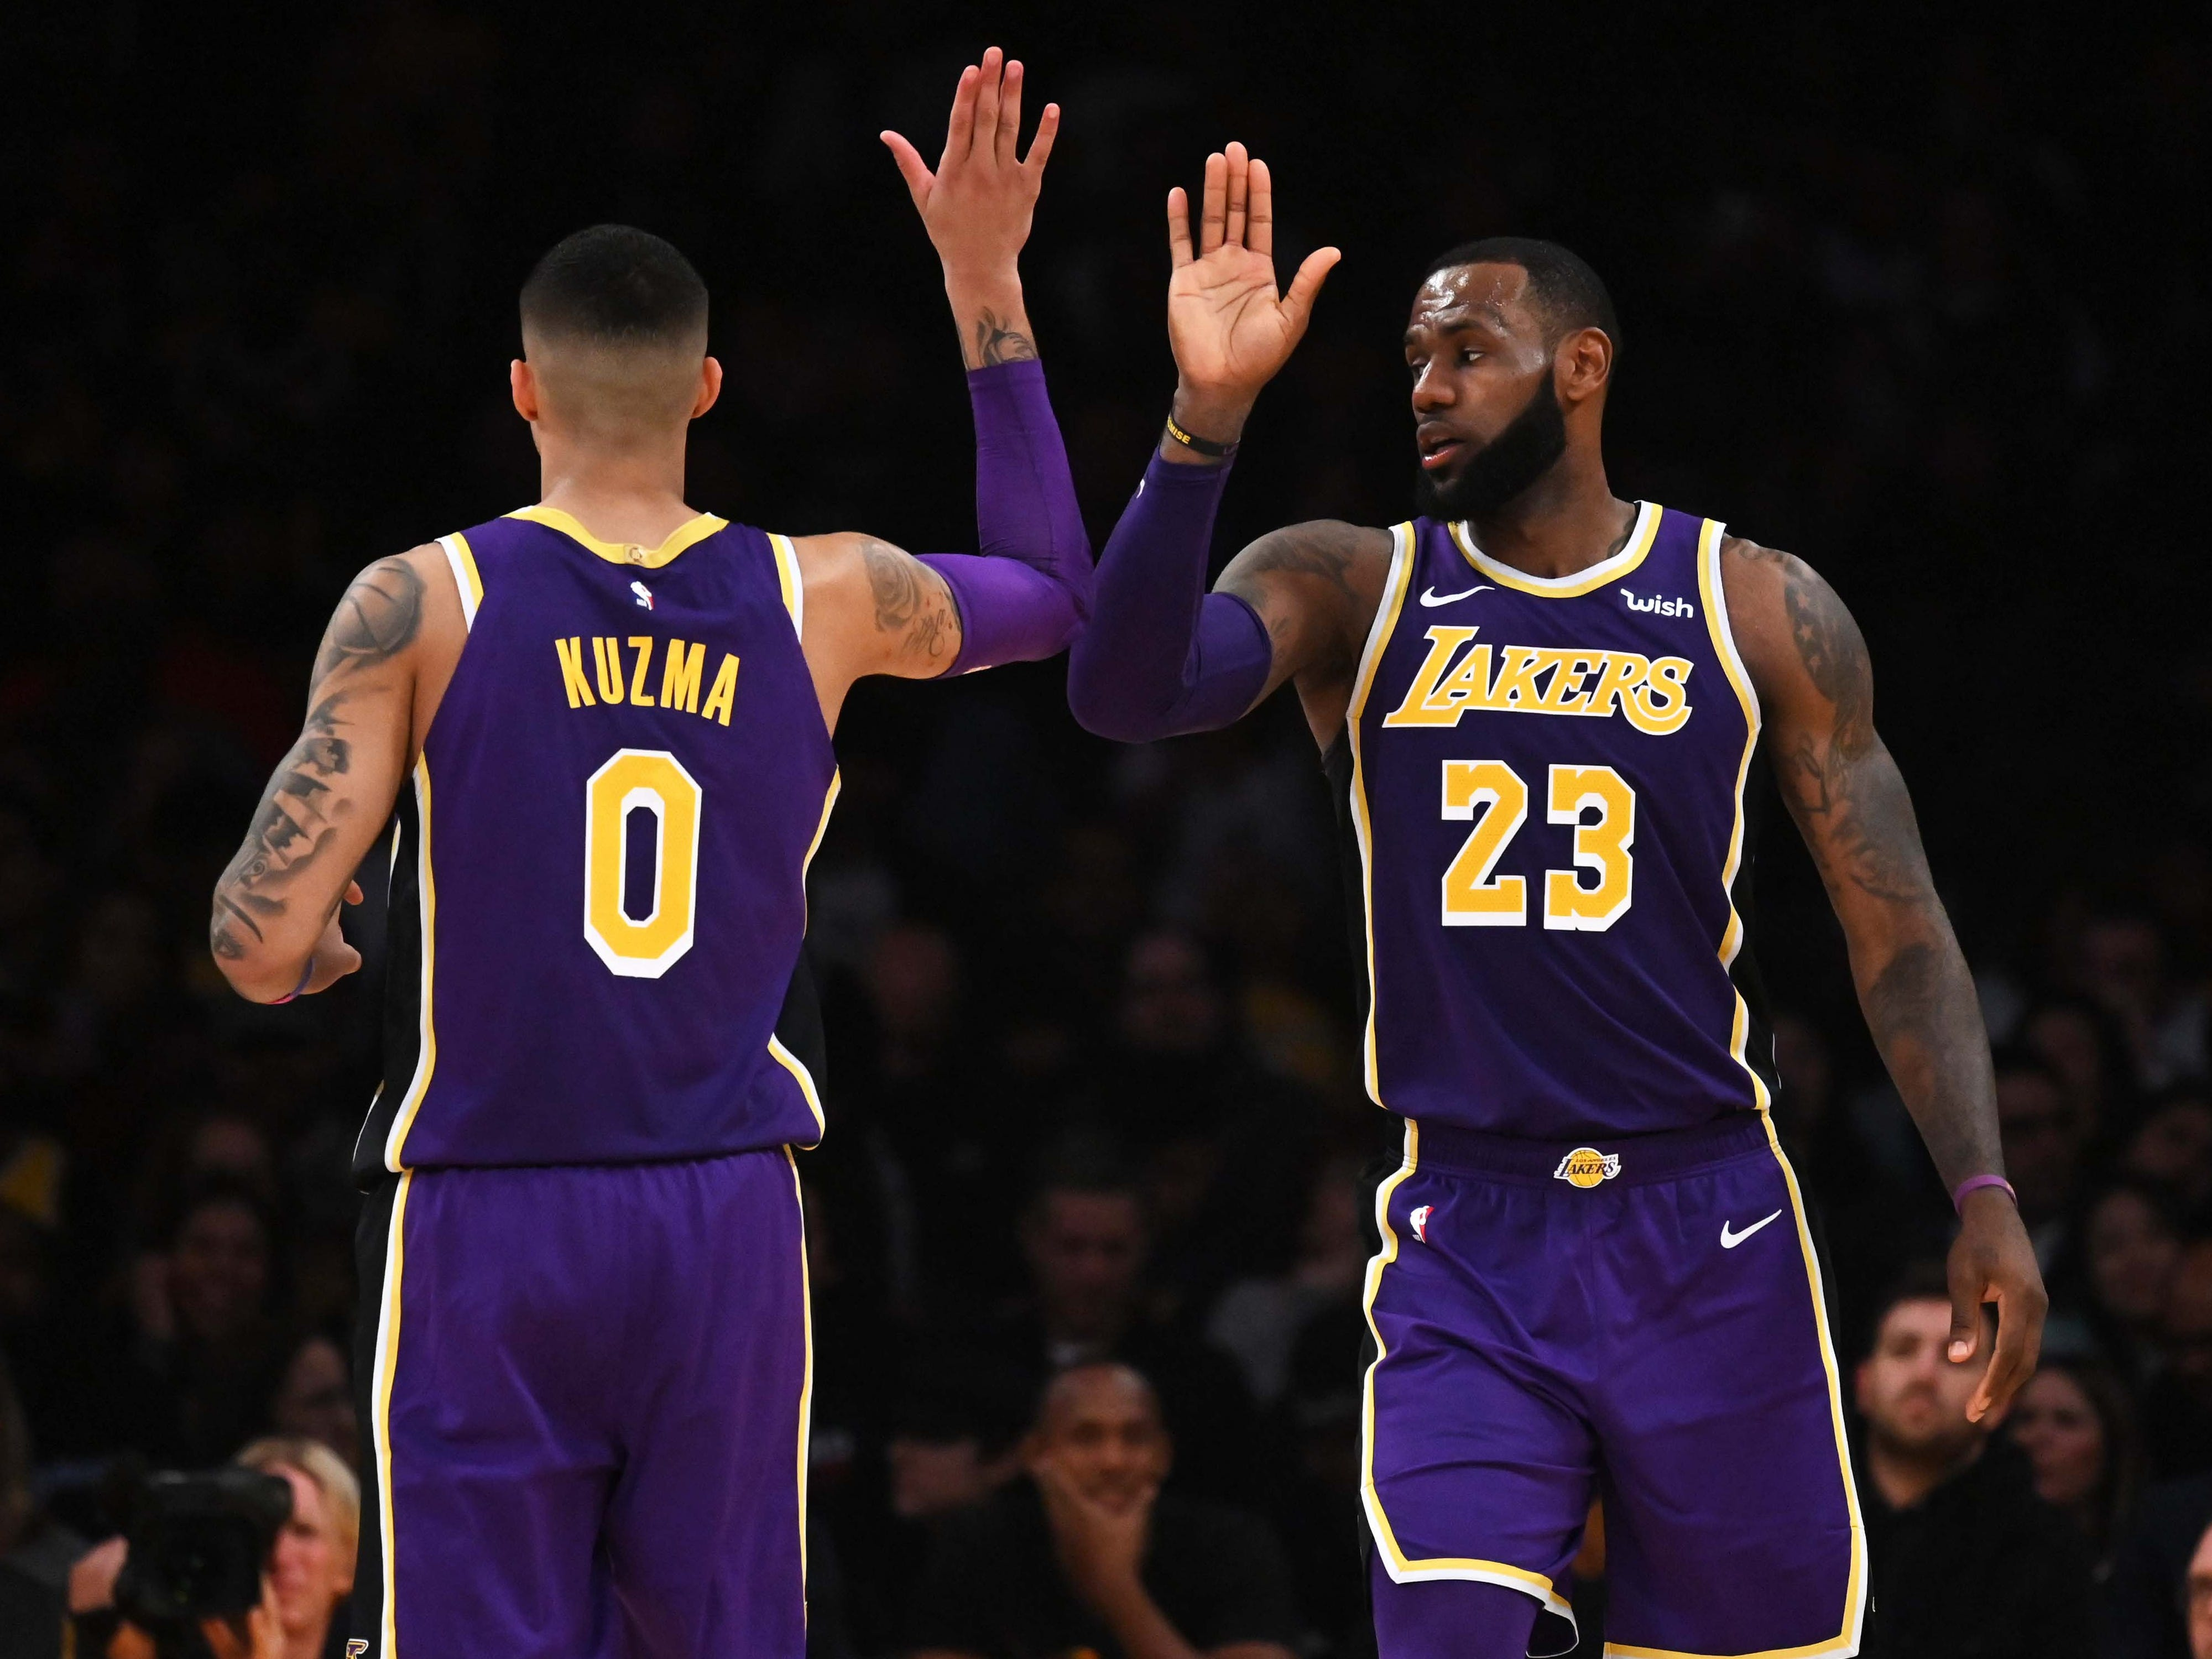 Dec. 5, 2018: LeBron James and Kyle Kuzma had reason to celebrate after the Lakers held off the Spurs for their 11th win in 14 games.